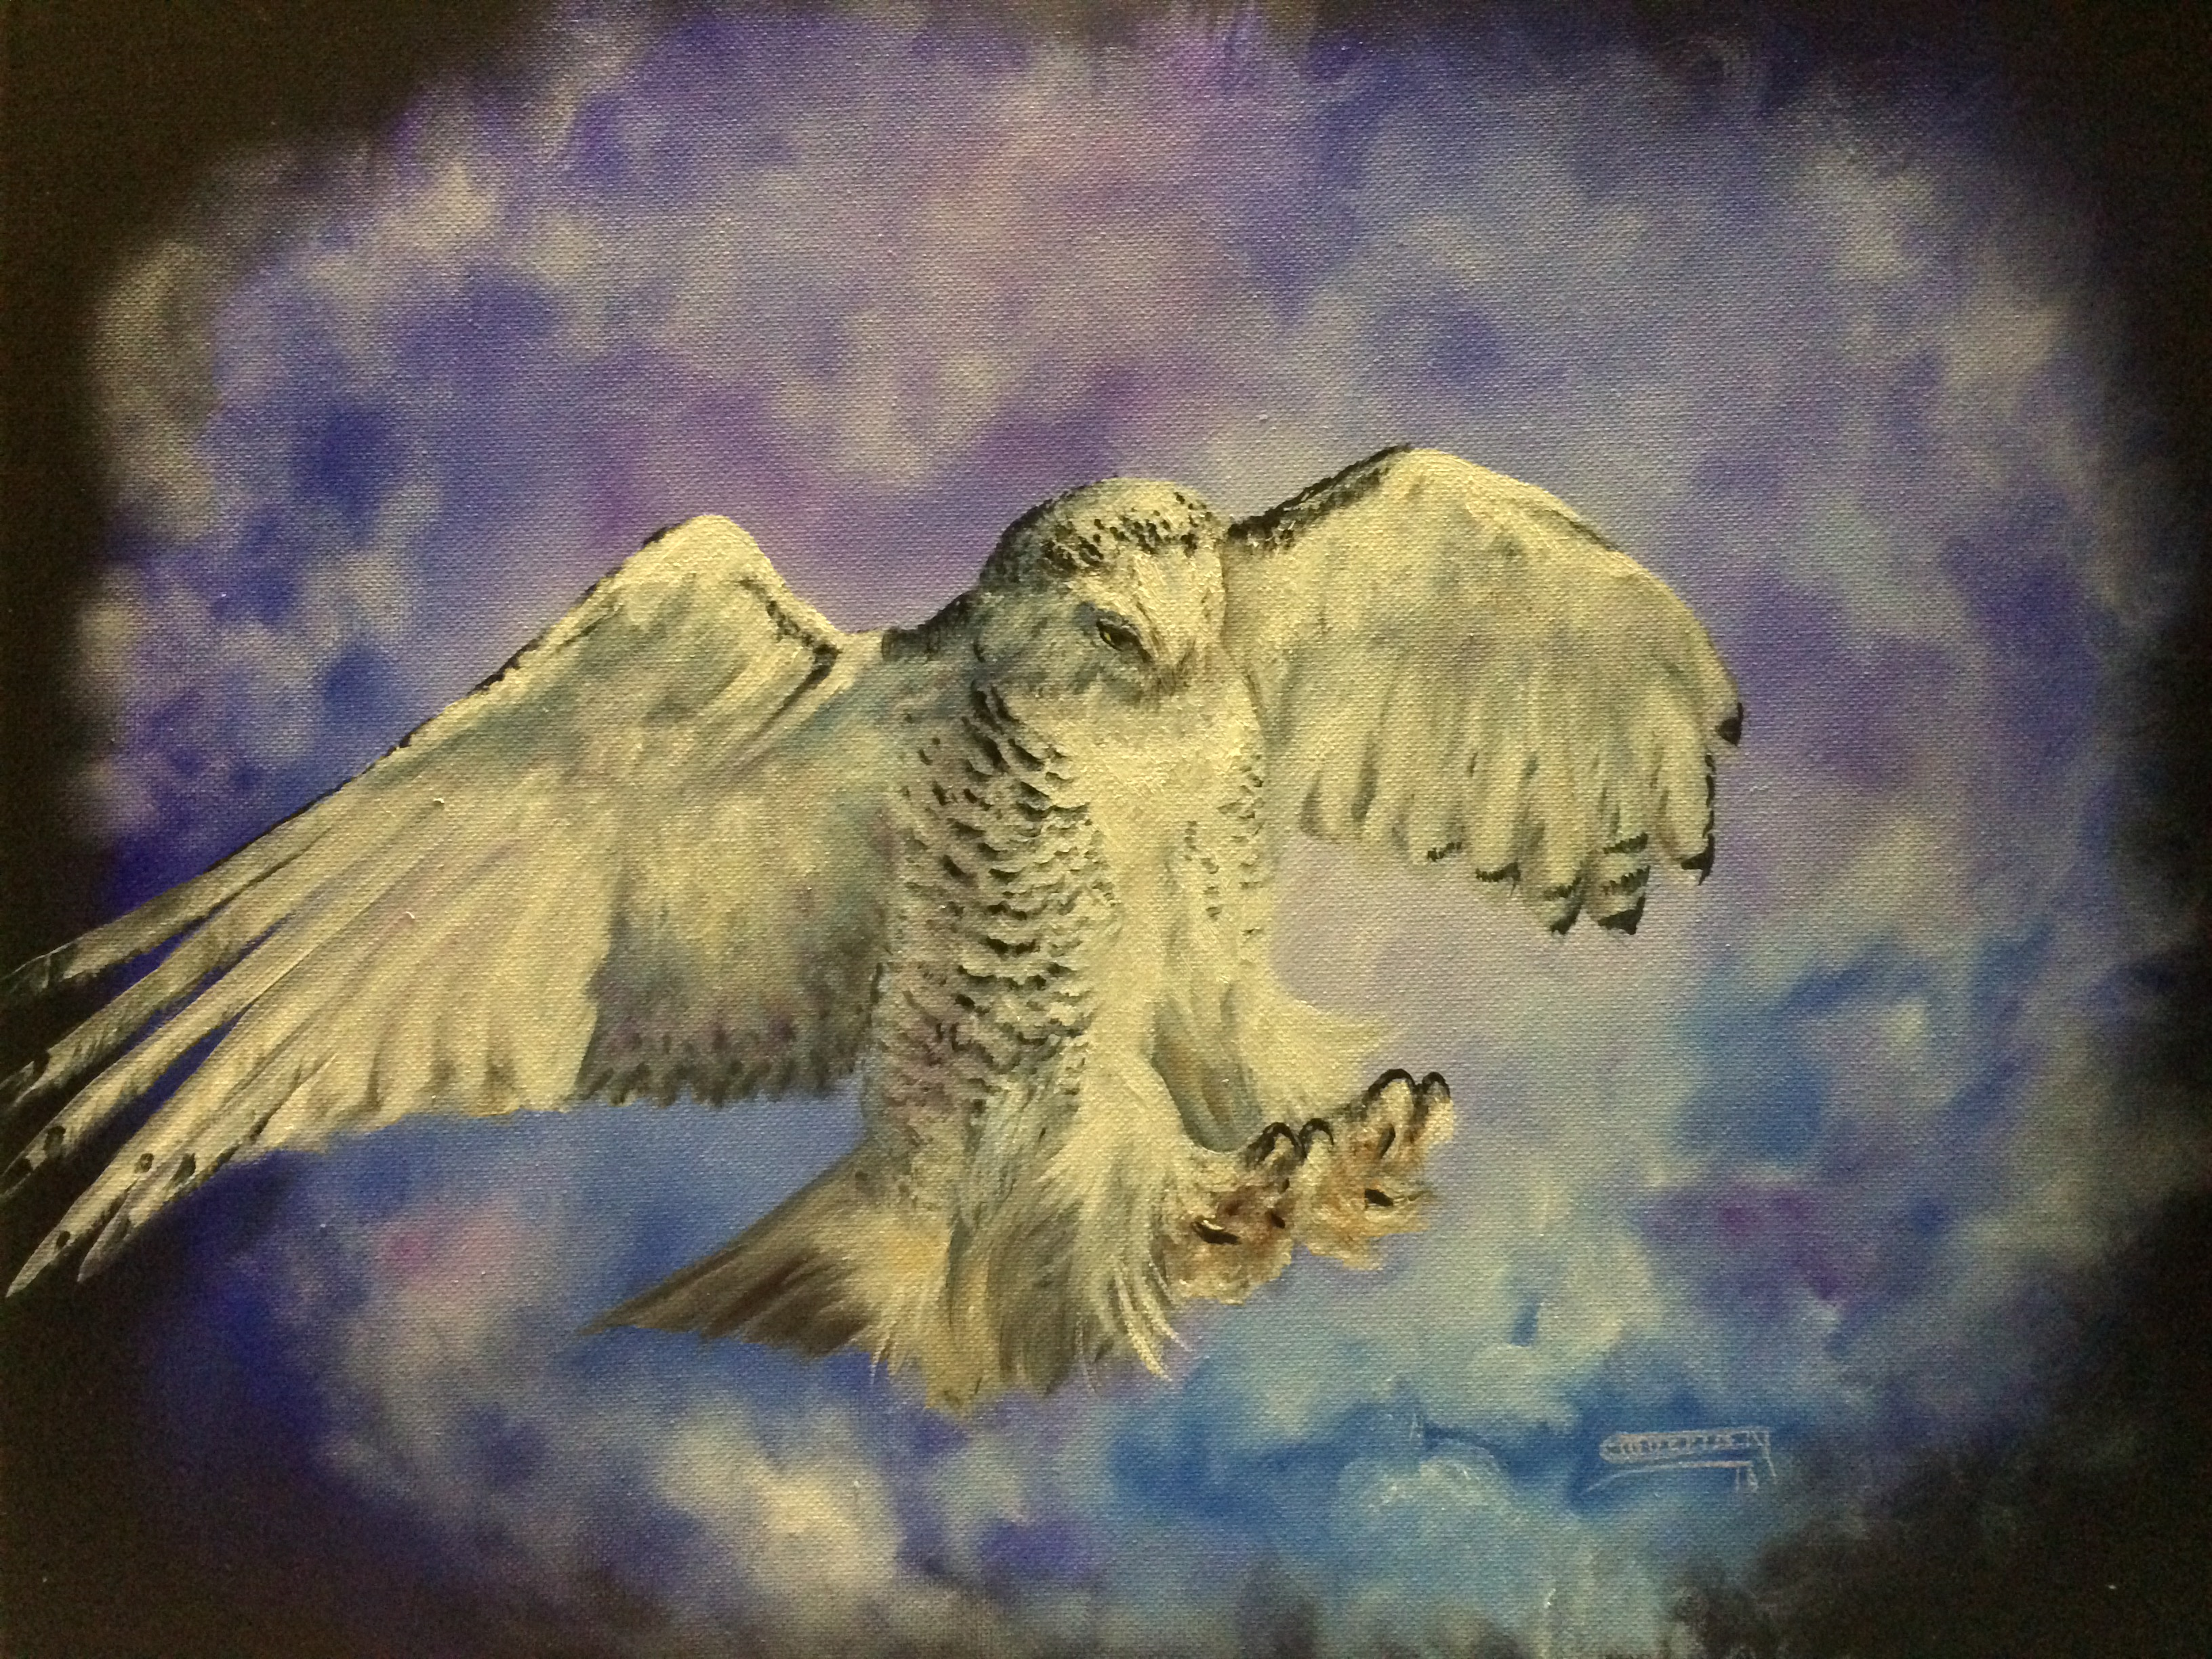 Spirit of the Snowy Owl